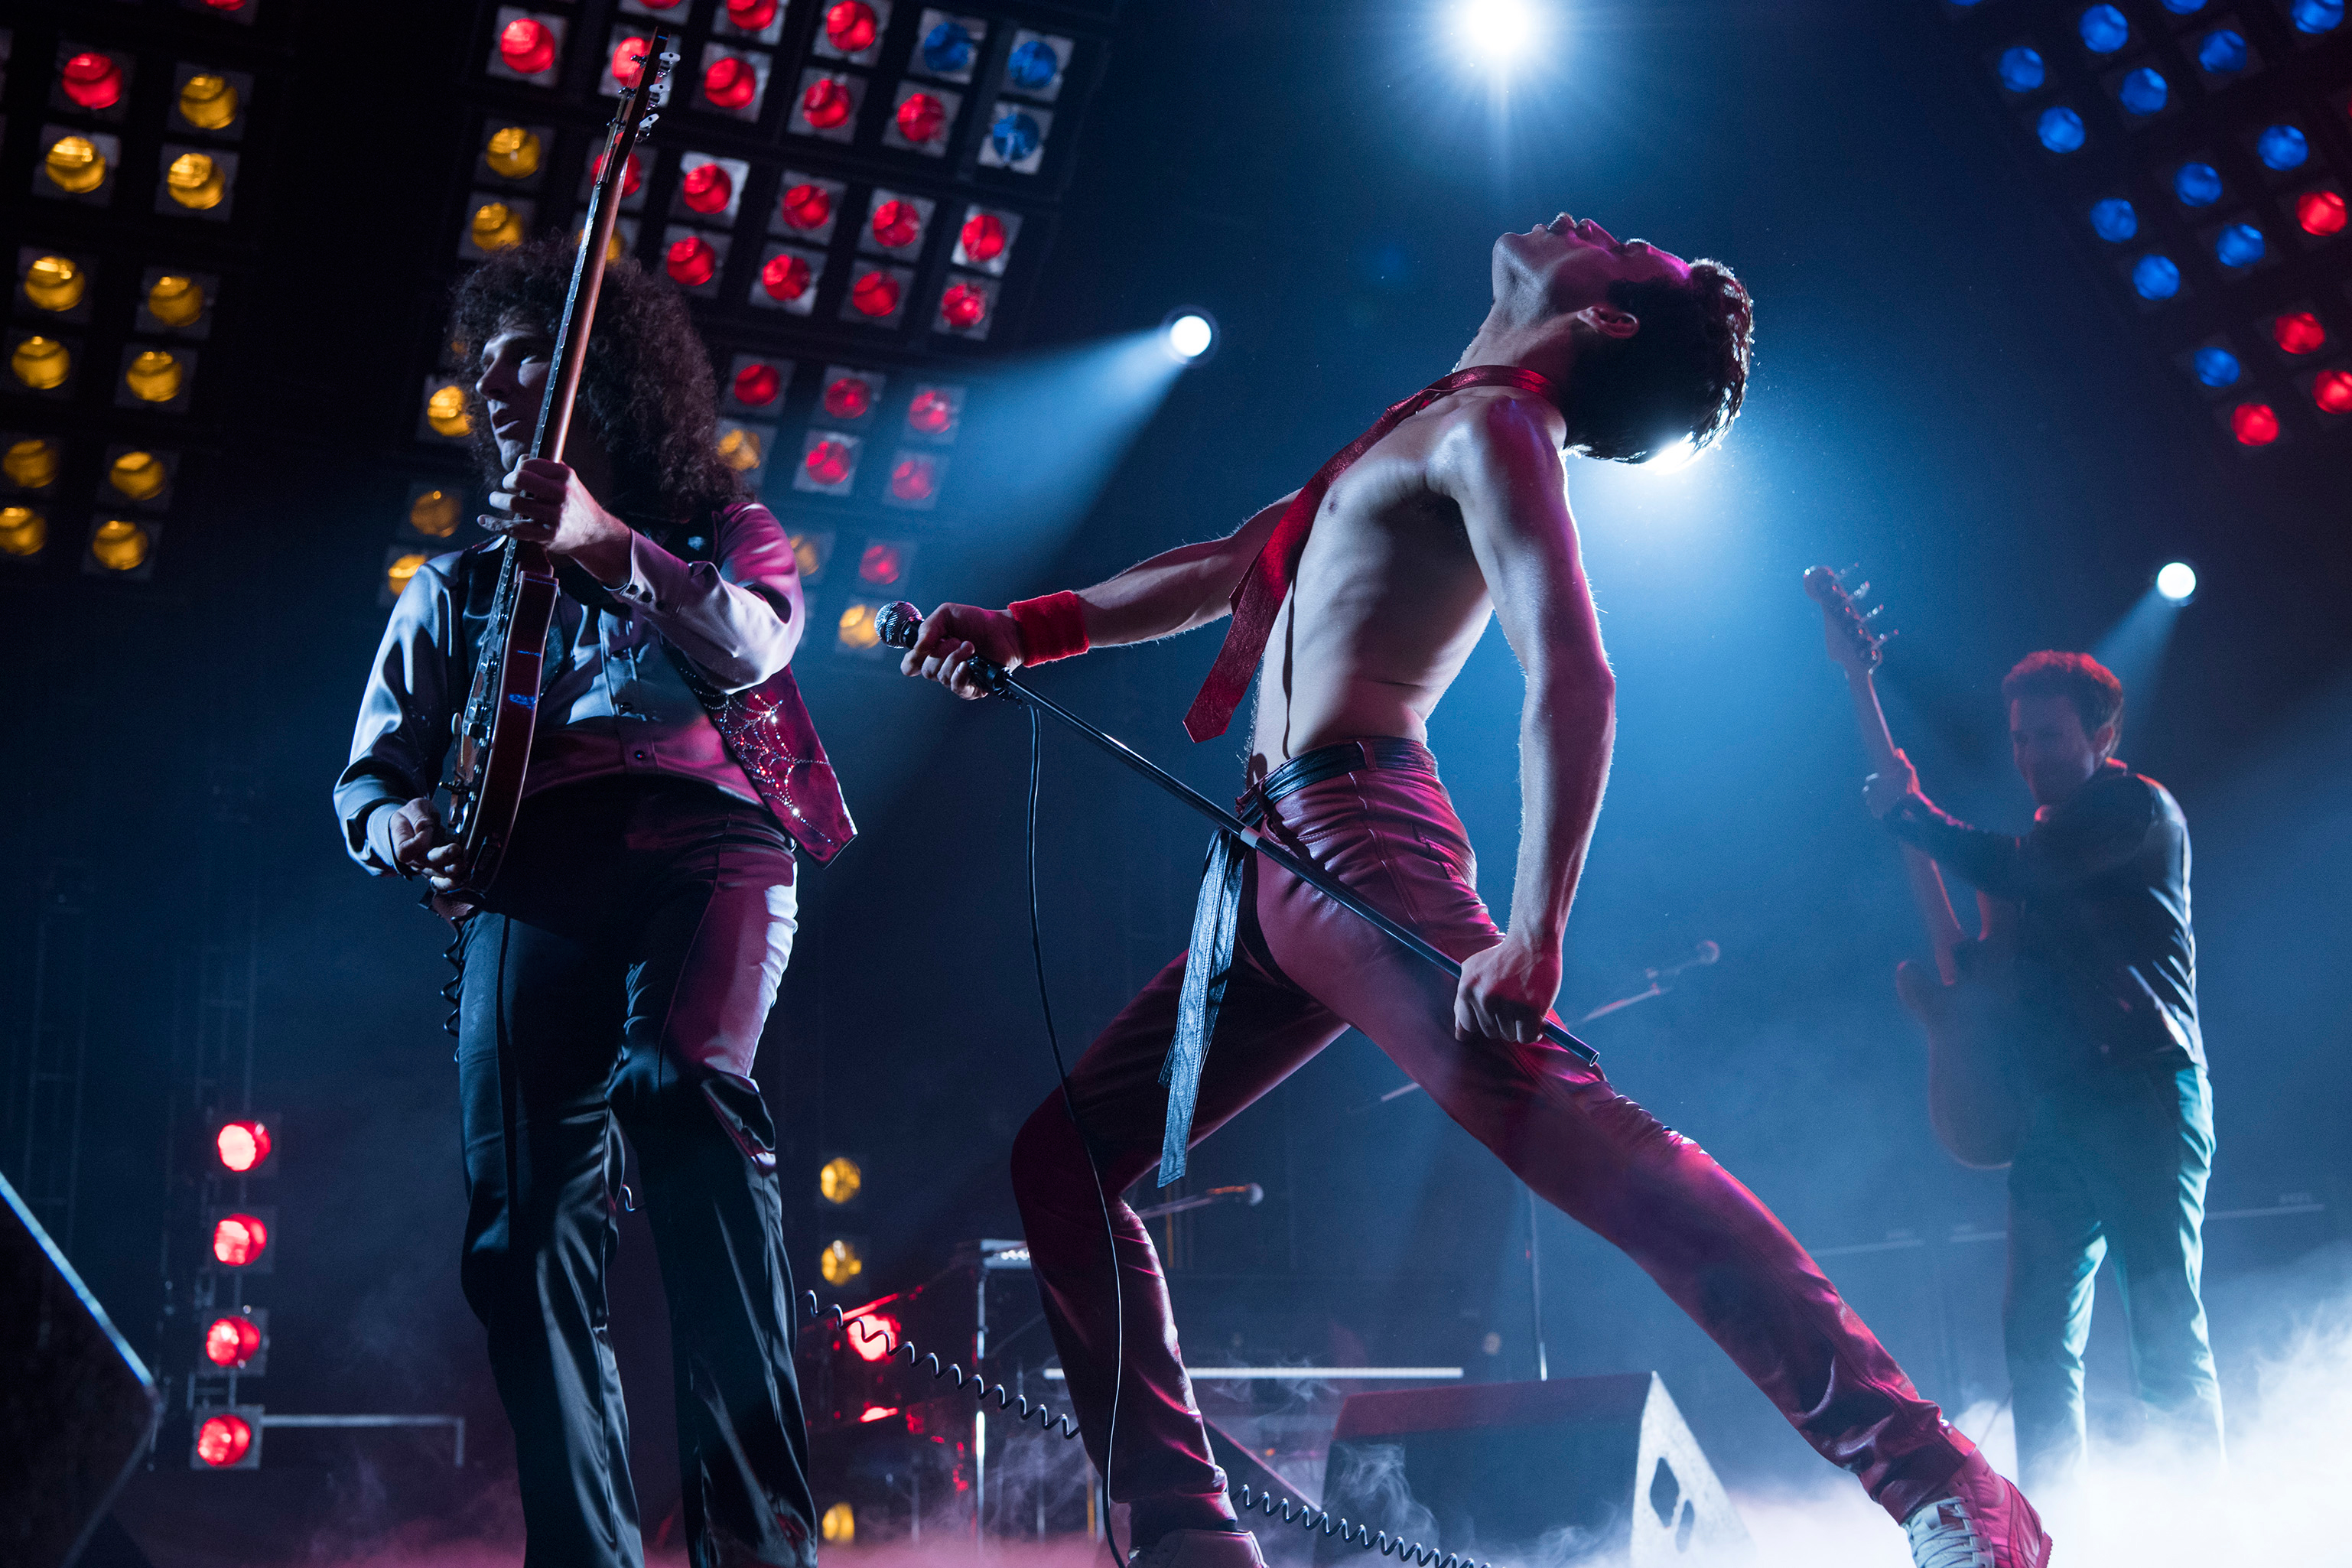 Review: Queen's 'Bohemian Rhapsody' Soundtrack is More Than Just a Greatest Hits